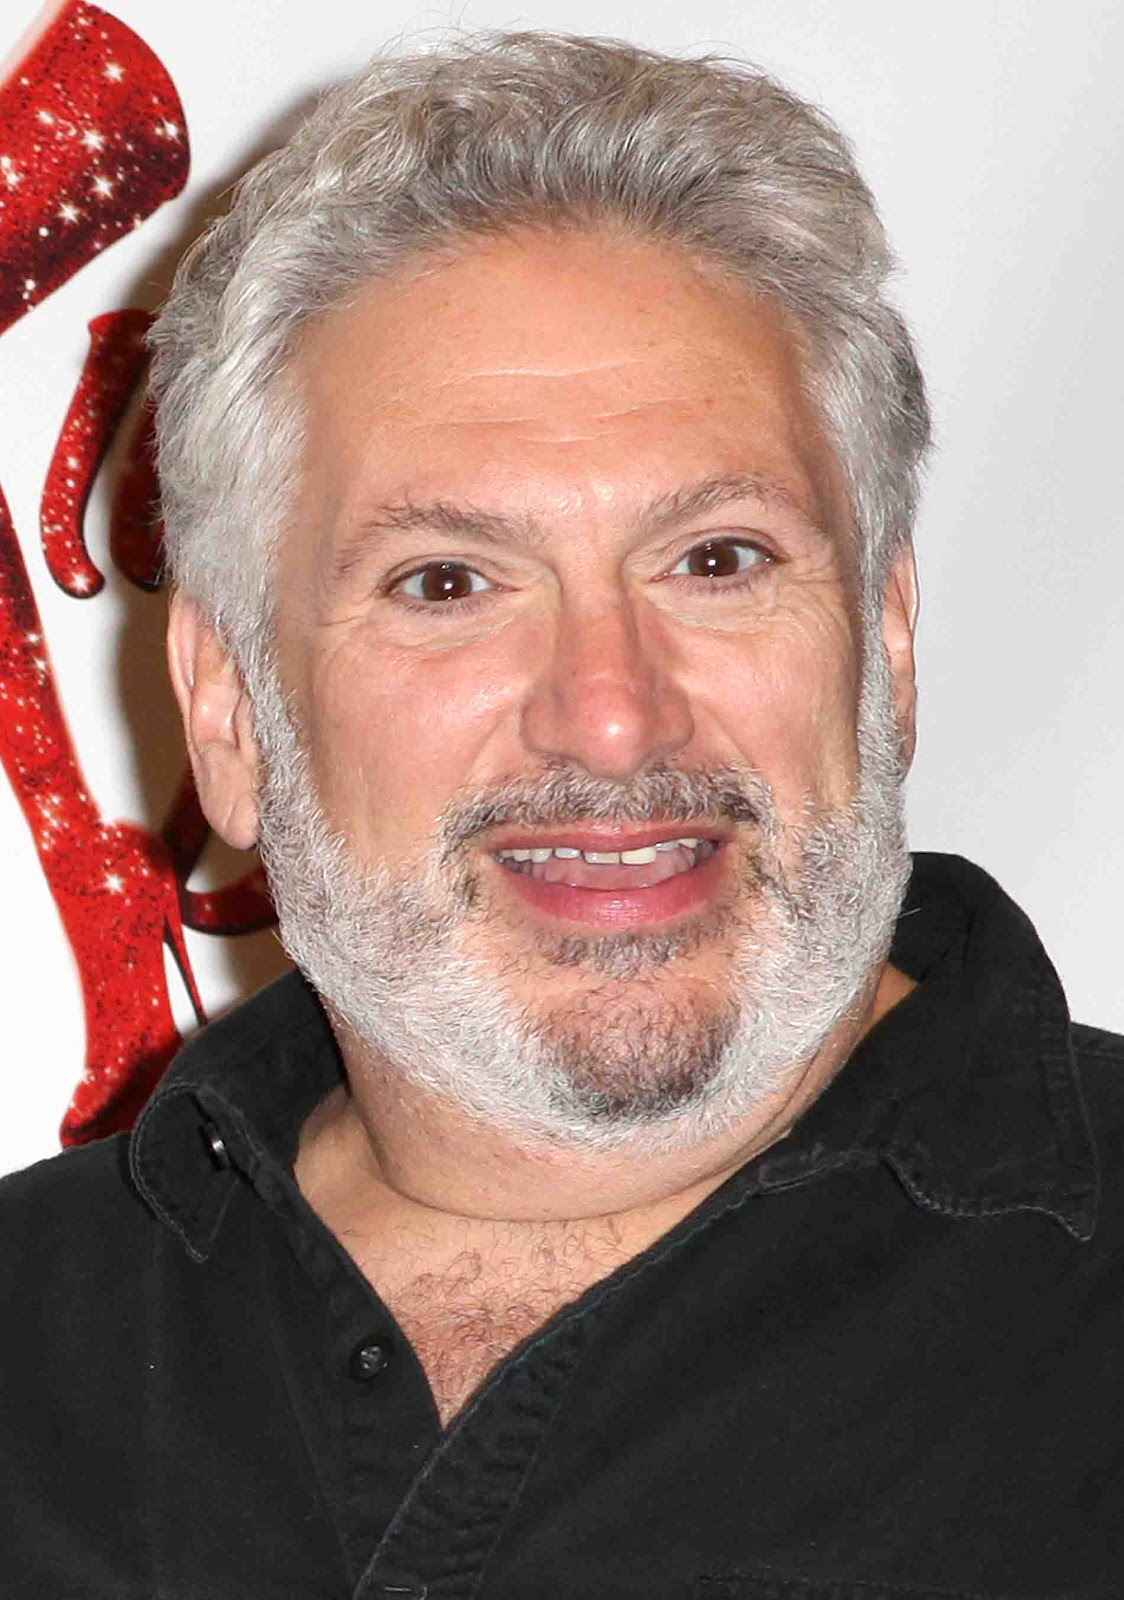 harvey fierstein net worthharvey fierstein edna turnblad, harvey fierstein youtube, harvey fierstein biography, harvey fierstein casa valentina, harvey fierstein mrs doubtfire, harvey fierstein independence day, harvey fierstein hairspray, harvey fierstein movies, harvey fierstein quotes, harvey fierstein net worth, harvey fierstein gay, harvey fierstein simpsons, harvey fierstein voice problem, harvey fierstein fiddler on the roof, harvey fierstein partner, harvey fierstein robin williams, harvey fierstein imdb, harvey fierstein kinky boots, harvey fierstein broadway, harvey fierstein interview